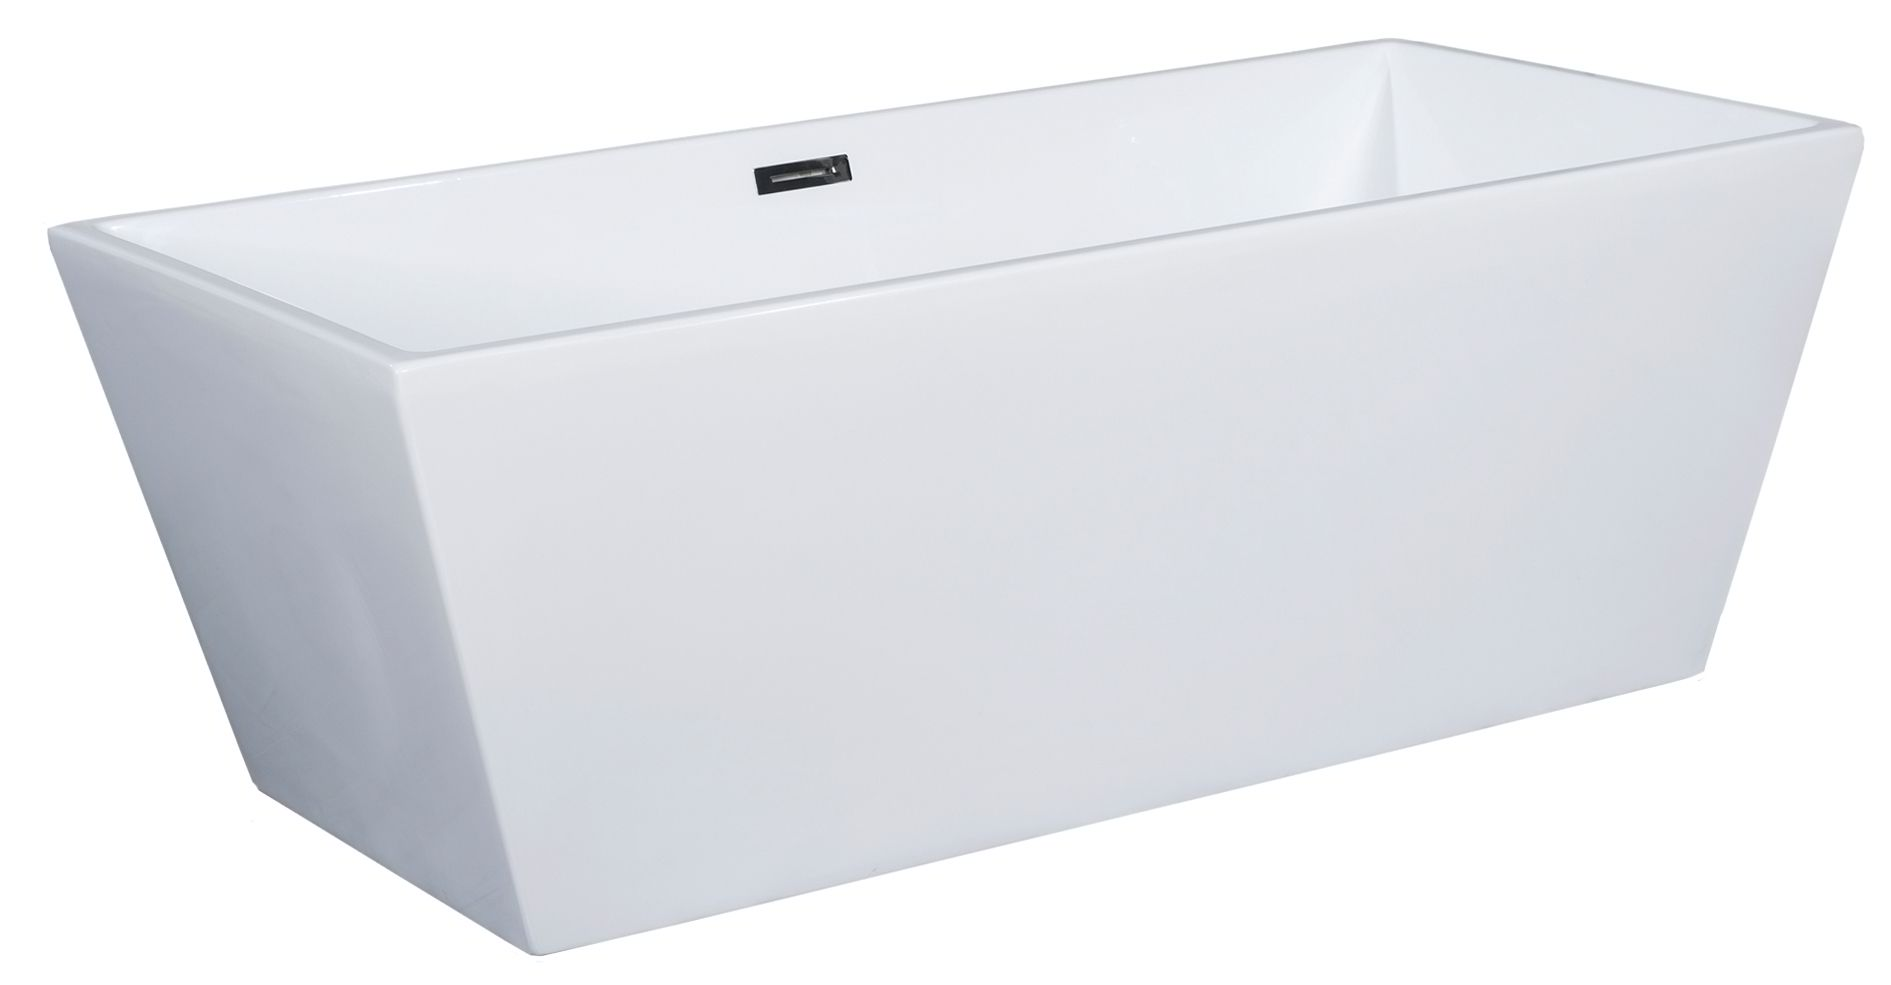 "ALFI Brand AB8833 59"" White Rectangular Acrylic Free Standing Soaking Bathtub"